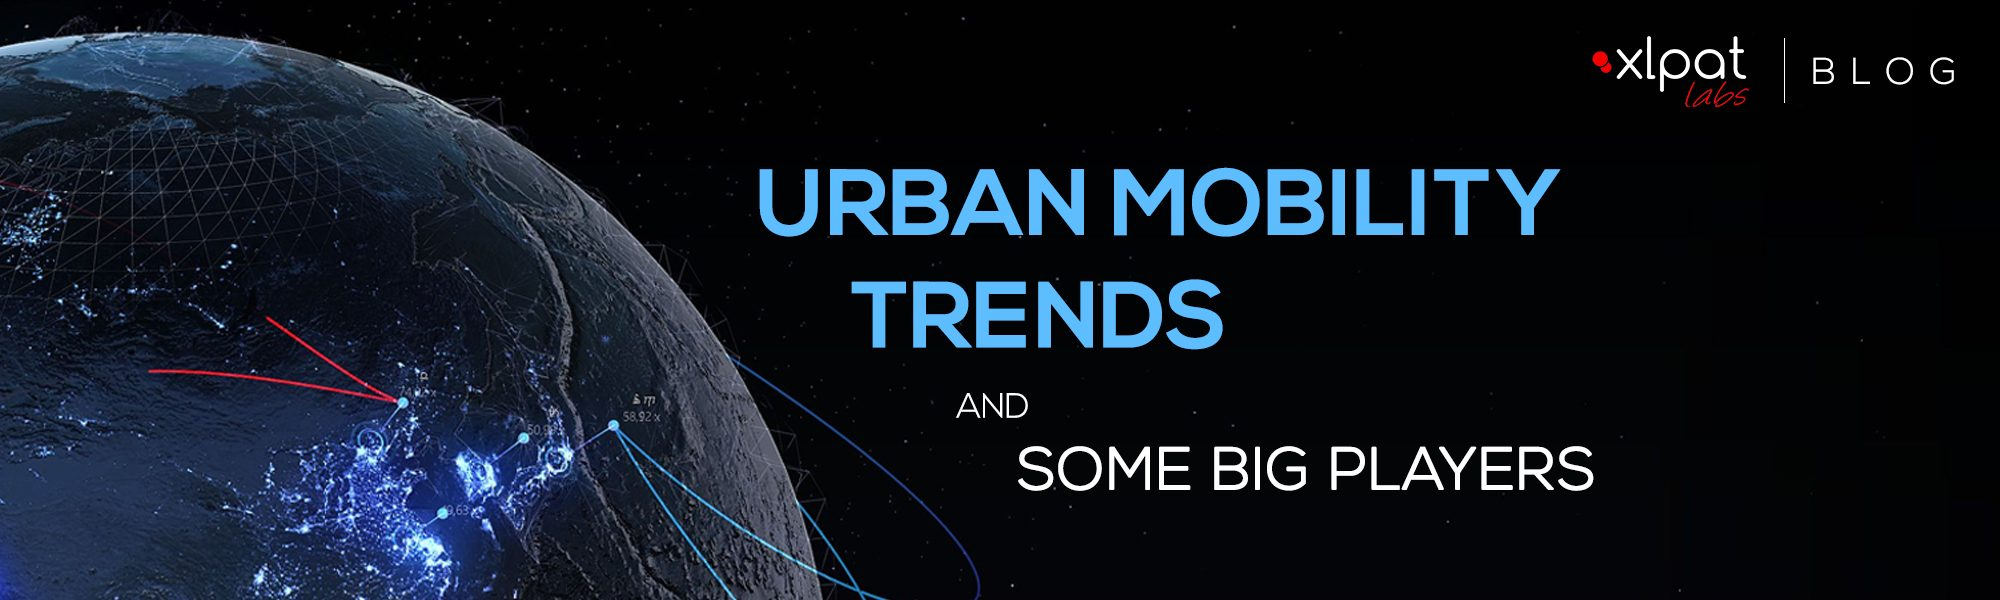 URBAN MOBILITY TRENDS AND SOME BIG PLAYERS